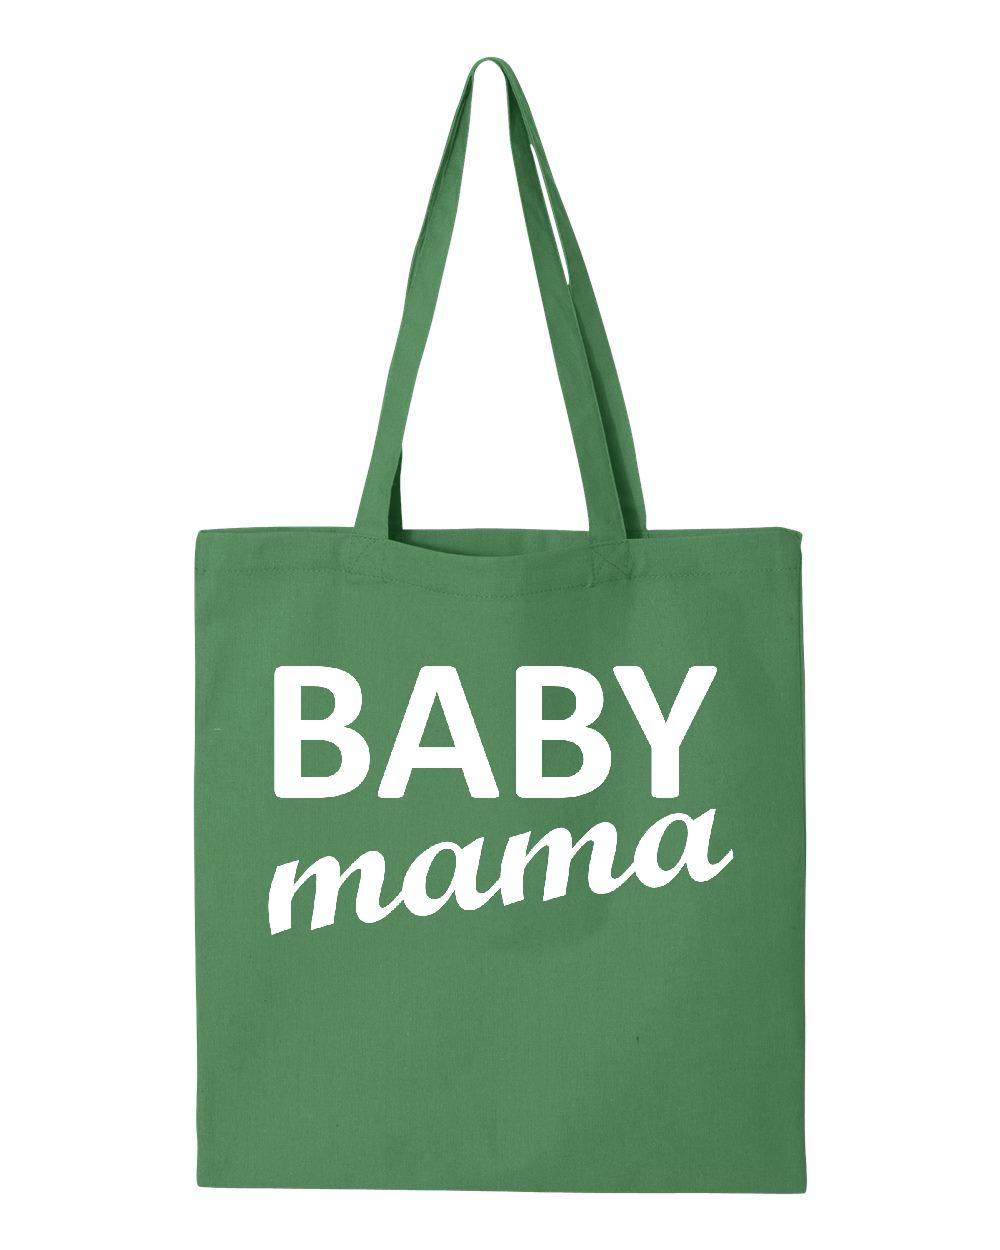 Artix Baby Mama Matching Item w Leggings Pants Hats Mothers Day Baby Shower Xmas Gift Tote Handbags Bags for Work School Grocery Travel 6 oz., 100% cotton canvas22 handlesSize: 14 1/2 x 15 1/2Proudly designed and printed in the US. Wash Inside Out with Cold Water. Hand dry recommended. Artix stands behind its product with a 100% satisfaction guarantee. Not happy? Hassle-free return policy for a refund or exchange. State of the art garment printing technology with eco-friendly ink to ensure vibrant colors and lasting durability. They are light weight, soft, breathable, and wash and dry wonderfully. Super soft lightweight garments feel and fit great.  These garments are prime examples of style and simplicity, cool and comfort all without compromising quality. Garment Care: Machine washable (wash inside out in cold water, hang dry). This product is resistant to fading and shrinking when they are properly washed as instructed. Itch-free ultra soft comfort, fabric feels great against your skin. Buttery smooth and soft fabric quality which consists of cotton and polyester in our most products. Once you wear our buttery smooth and soft fabric garments, you will never want to take it off! Come enjoy a smooth comfortable and stylish experience. Look and feel simply amazing in stylish. Ways to style: wear with leggings, jeans, pants, skirts, shorts, socks, hats, scarves and jewelry accessories for an ultra sylish look. We have the most popular and biggest selection of printed graphic designs. No matter what your lifestyle is, we have a pattern for you! Great for special events, family gatherings, birthday parties, church, holidays, girls night out, vacation, beach, party, going out etc as well as suitable to wear for shopping, sports or just daily wear. Color Disclaimer: Due To The Monitor Settings, The Colors May Look Different. We strive to make our colors as accurate as possible (All pictures are real stock photos) Please visit our store for more apparel items; shirt, sweater, hoodie, sweatshirt, tank tops, tanks, crewneck, jacket, coats, workout t-shirts, funny t shirts. We carry women clothes, dresses, motherhood maternity dress, pregnancy clothes, sleep dress, dresses for juniors, graduation dresses, summer dresses, prom dresses, evening dresses, men clothing, big and tall men clothing, plus size, unisex clothes, children clothes, clothing for boys, couple shirts, clothes for girls and kids, and medical scrubs halloween costumes, t shirts with funny sayings,wolf shirt, zumba clothes, yoga clothing. Perfect gifts are available for fashion people, matching couples gifts clothing, best friends, for mother, and for father. Gifts for Halloween, Thanksgiving, Christmas, Hanukkah, Wedding, Gay Marriage, Anniversary, Bridal Shower Gifts, Baby Shower Gifts, Birthday, Cancer and Autism Awareness and X-mas. Fashionable casual clothes from bikini to nightlife outfit for stylish people and any other special costume. Some popular designs are also available for your pets; dogs, and cats.